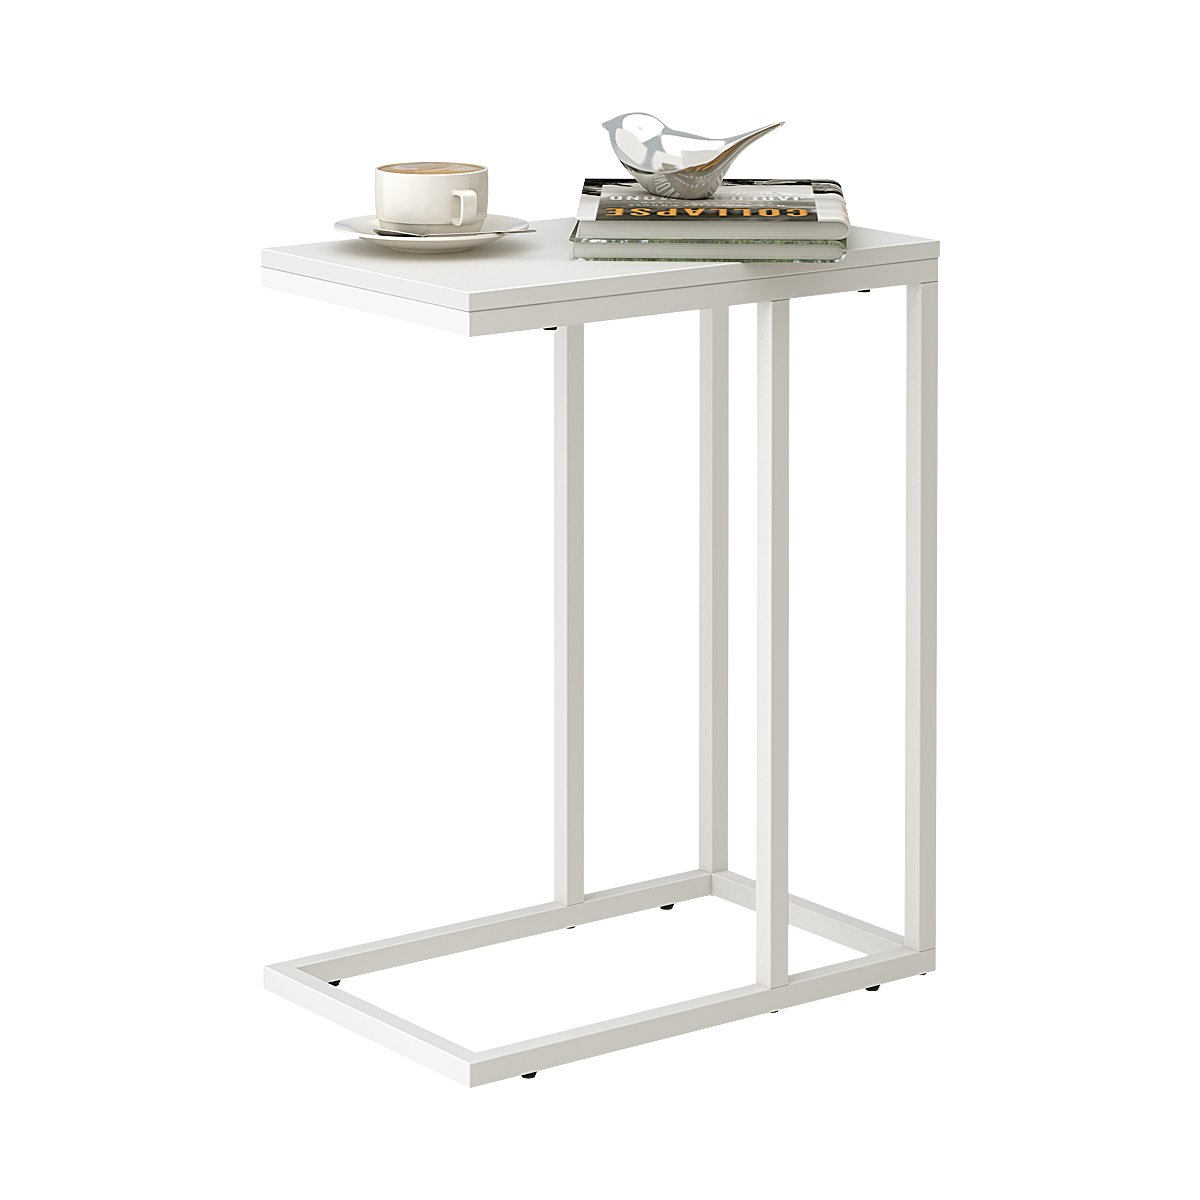 WLIVE Snack Side Table, C Shaped End Table for Sofa Couch and Bed, White by WLIVE